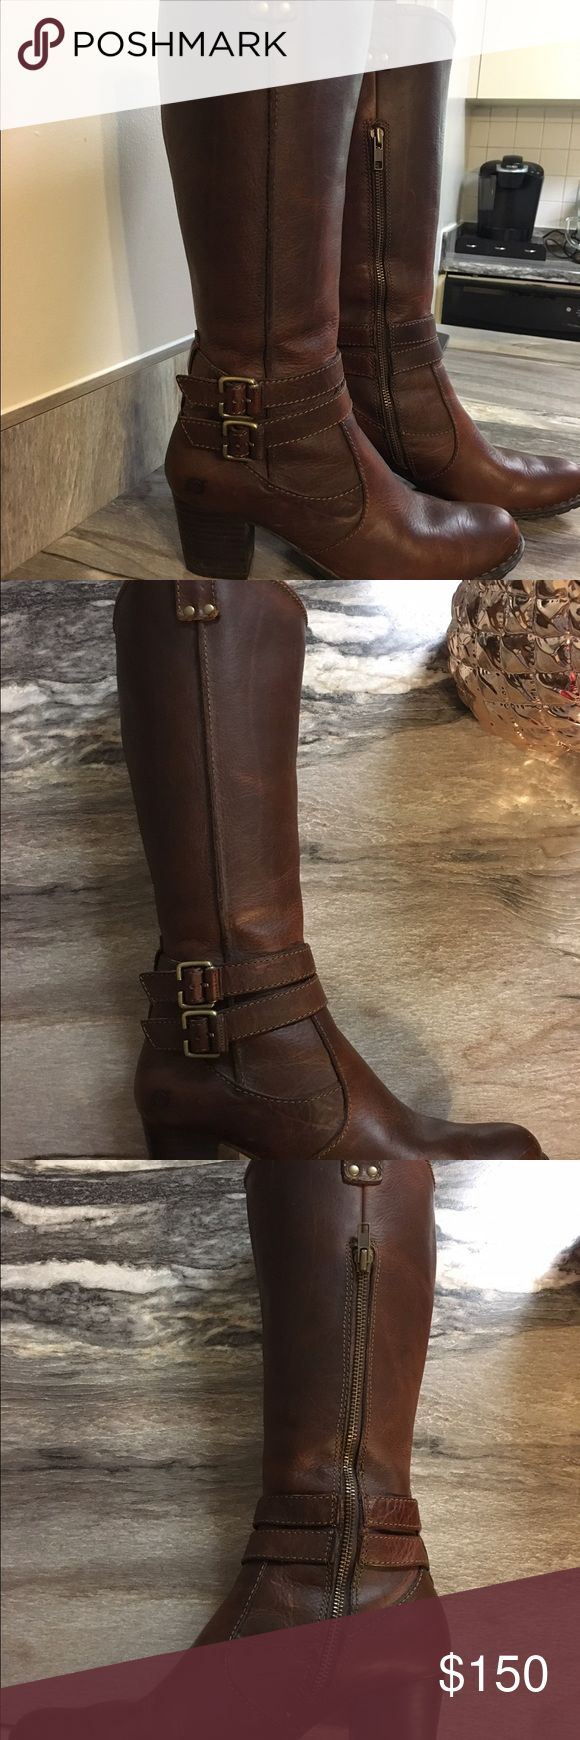 Women's size 8 trendy brown heeled boots Women's low-heeled boots.  Worn once.  They are too big for me, otherwise I would keep them.  The brand is Clarks, and they have a cushioned sole, with very thick and sturdy 100% leather.  These originally sold for $300. Clarks Shoes Heeled Boots